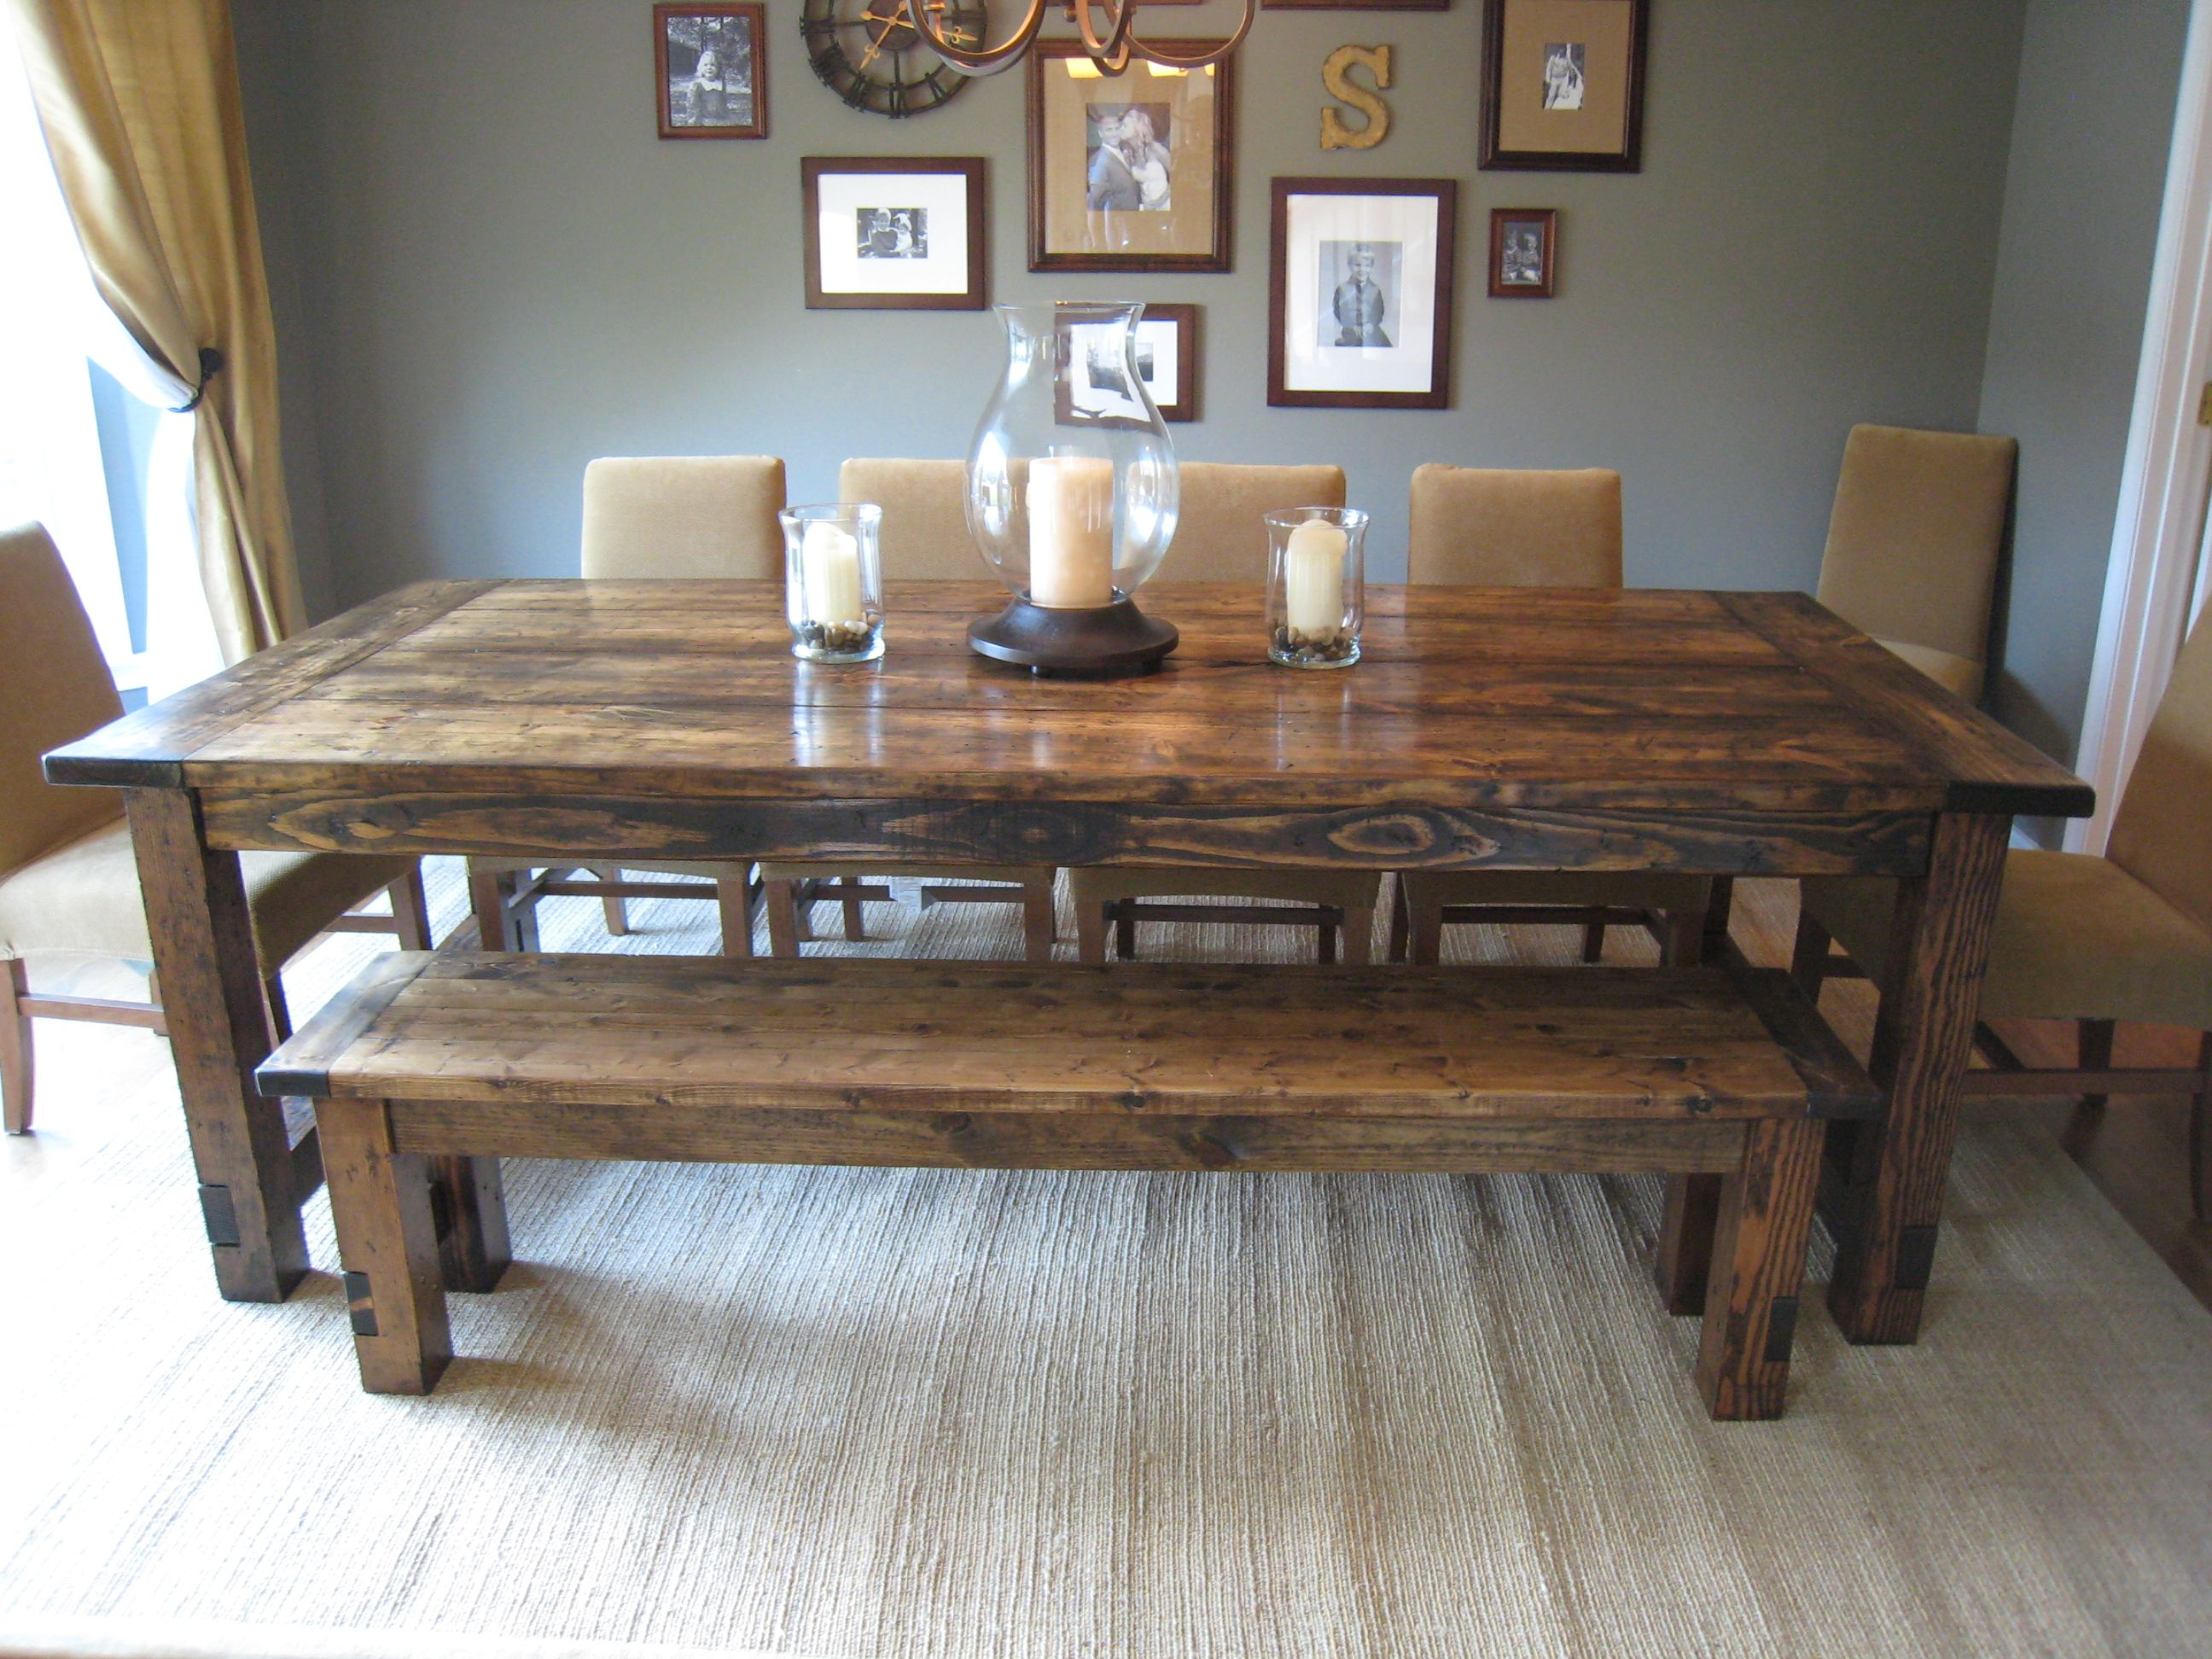 How To Make A Farm House Dining Table Melindaspriggs